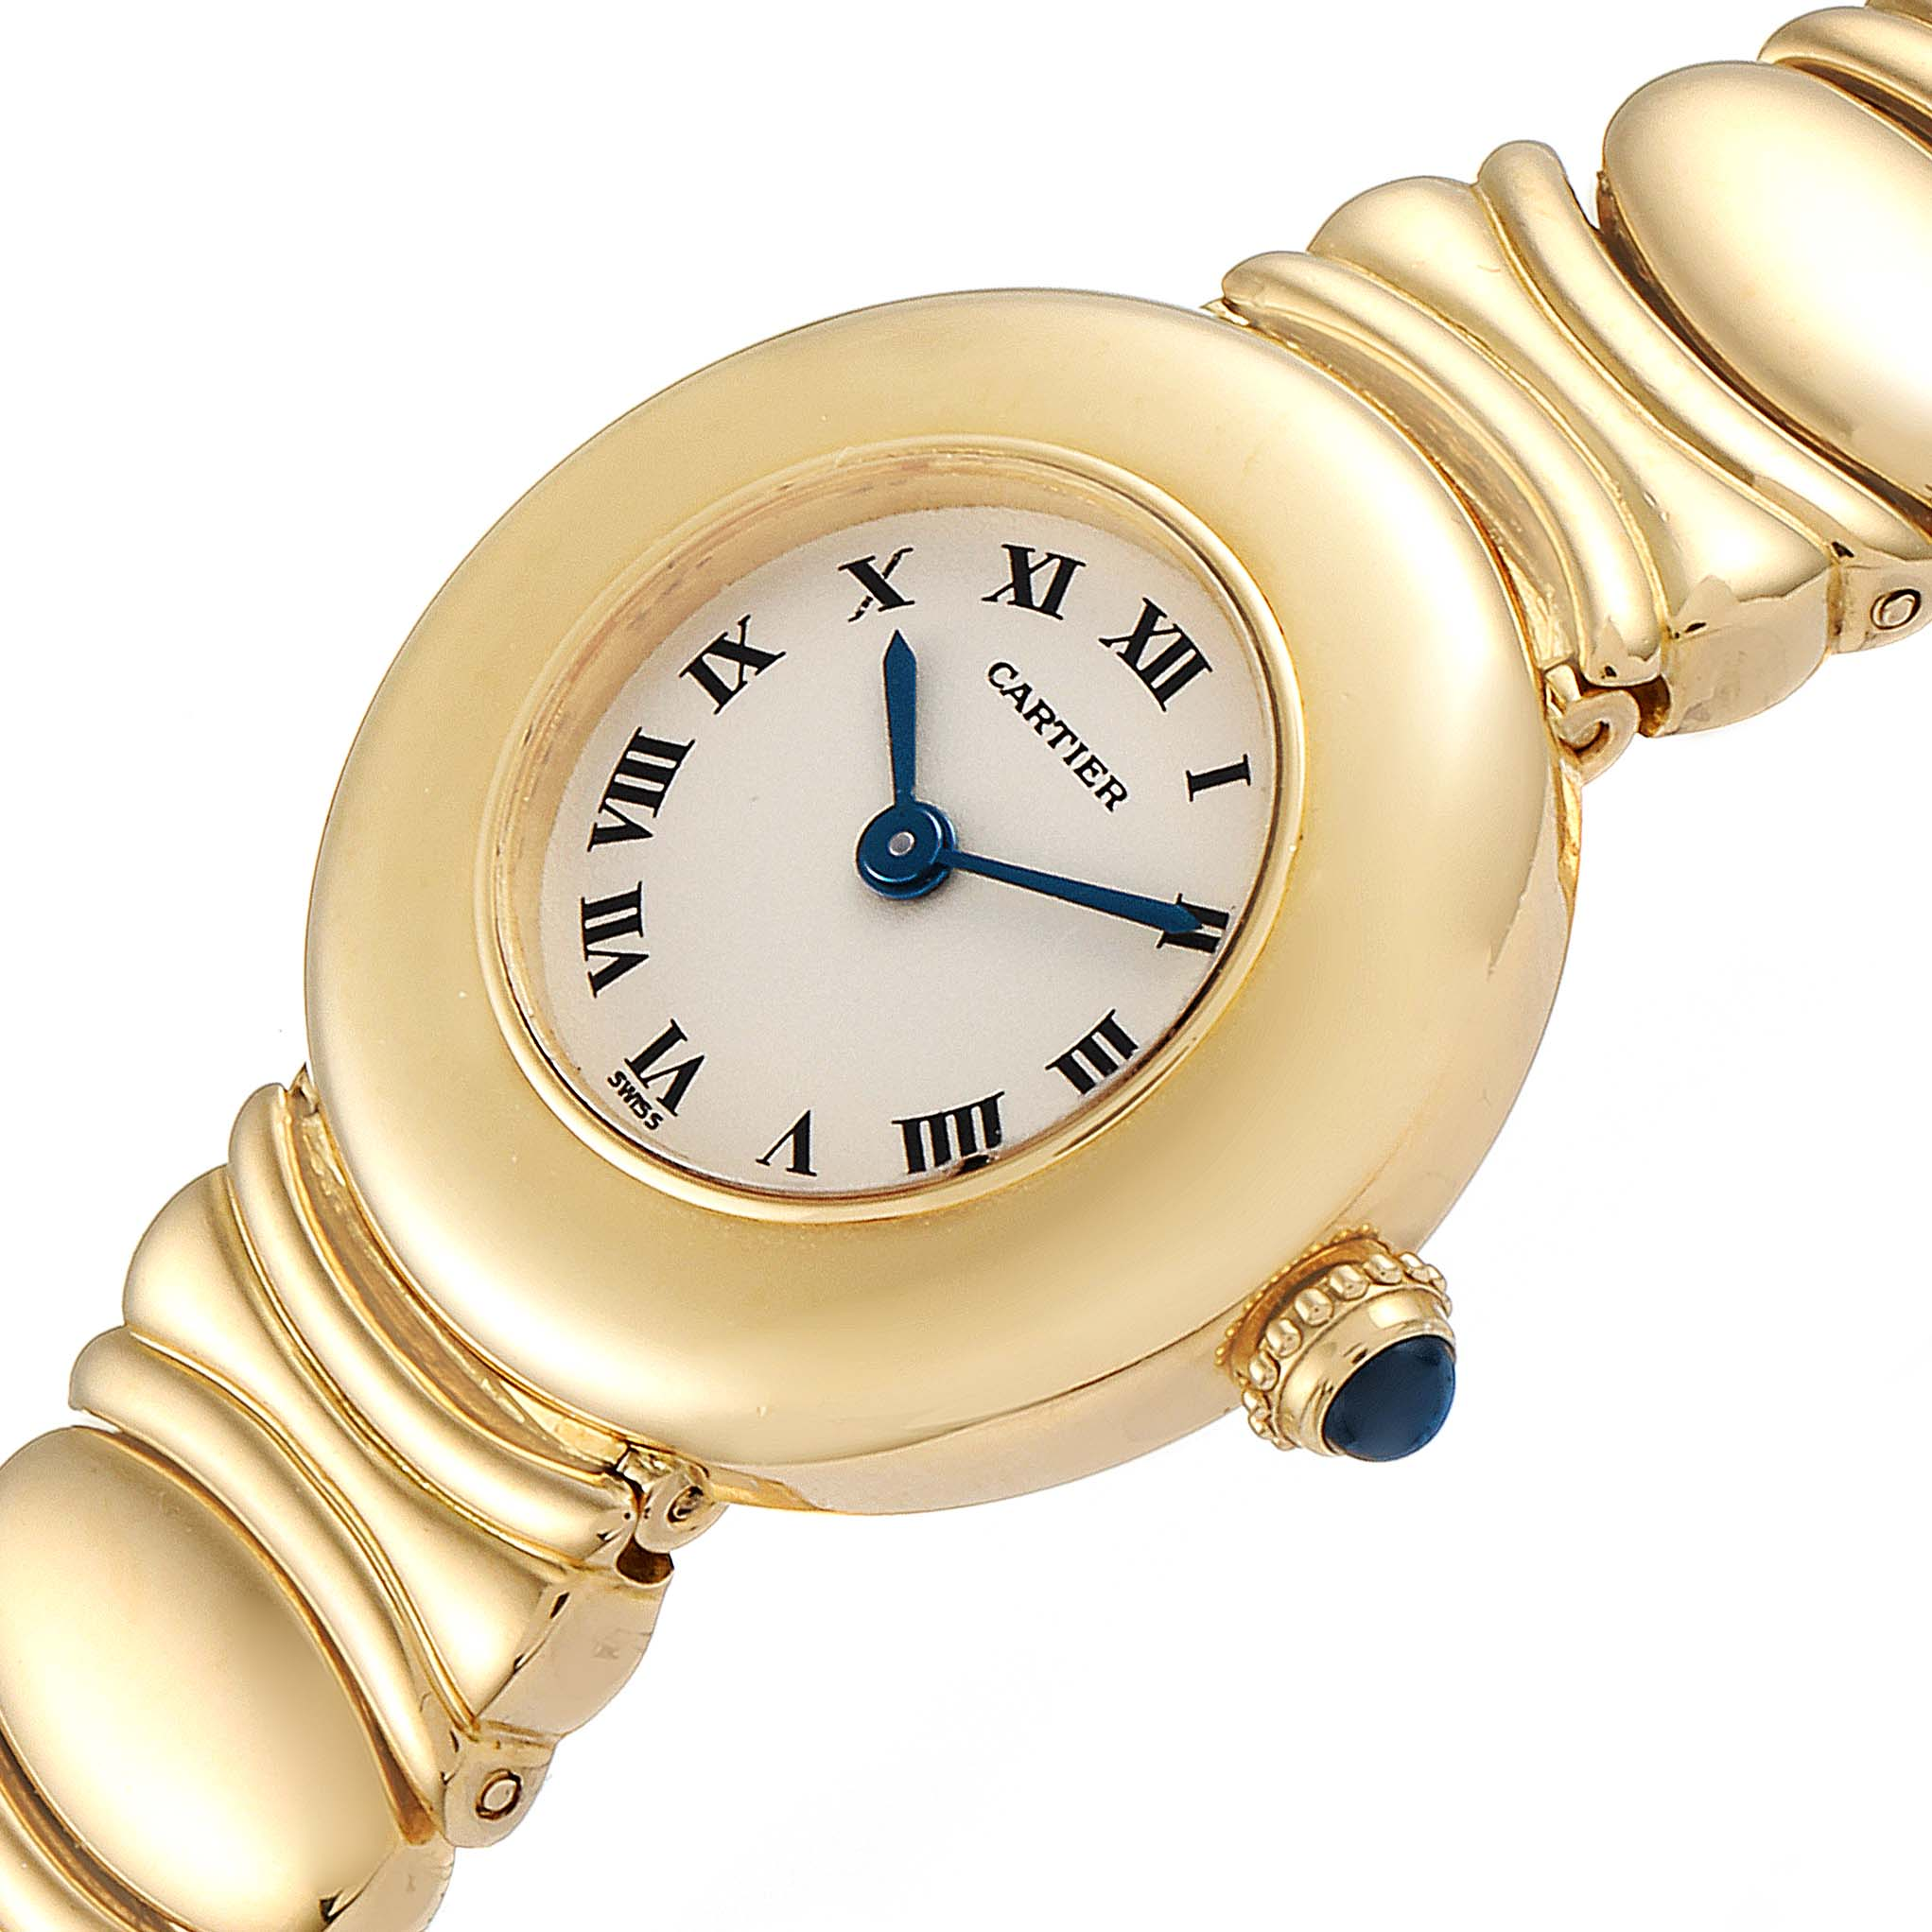 Cartier Colisee 18K Yellow Gold Silver Dial Ladies Watch SwissWatchExpo